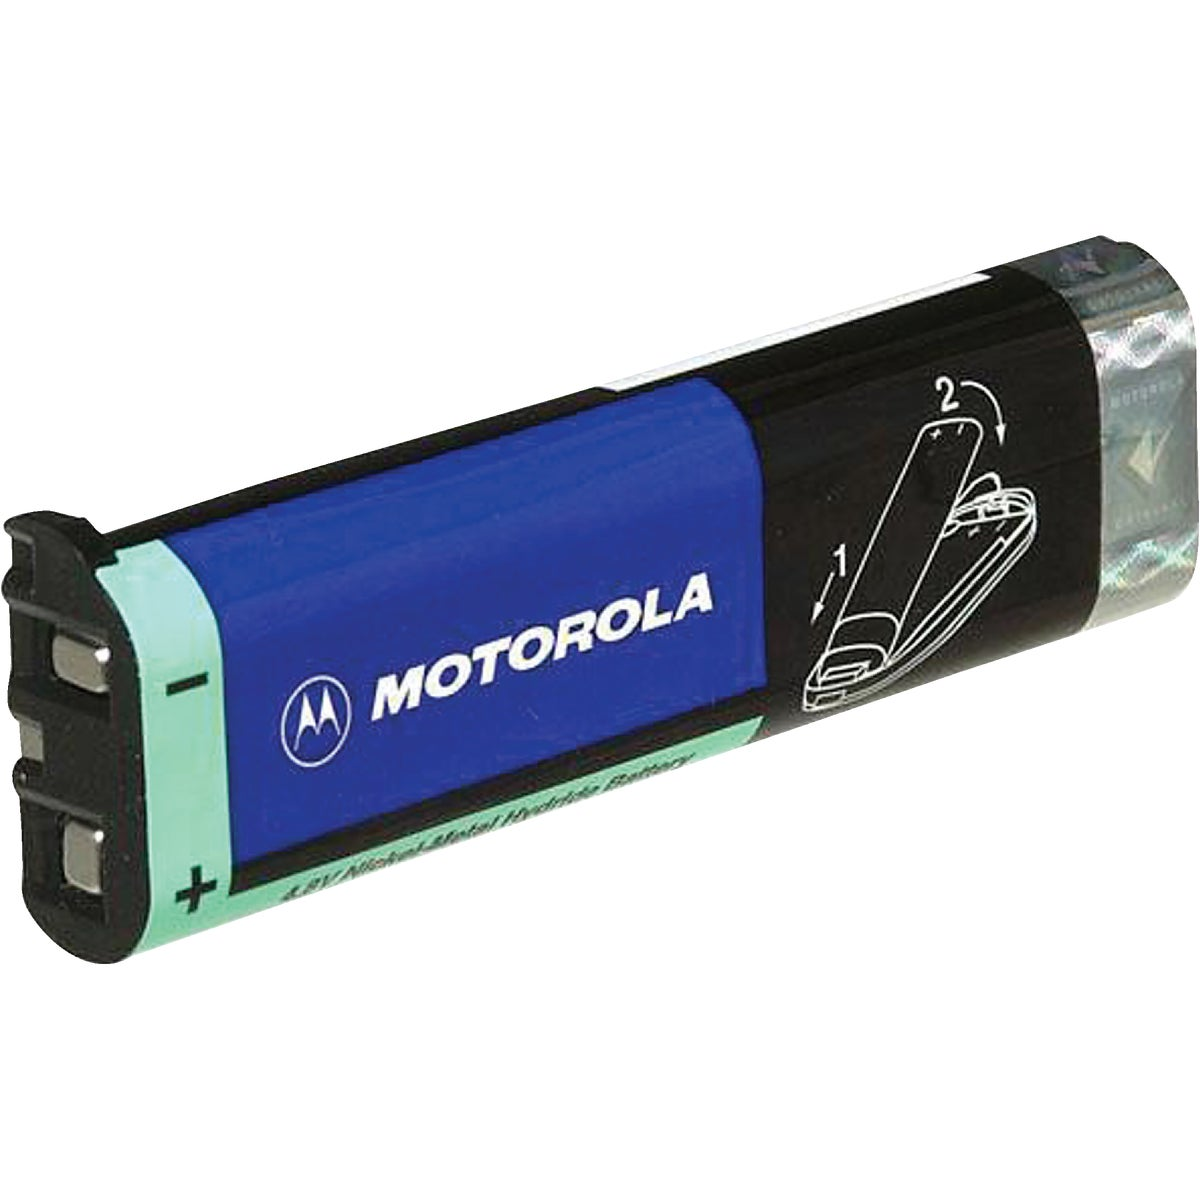 NIMH BATTERY - NNTN4190A by Motorola  Acs Inc